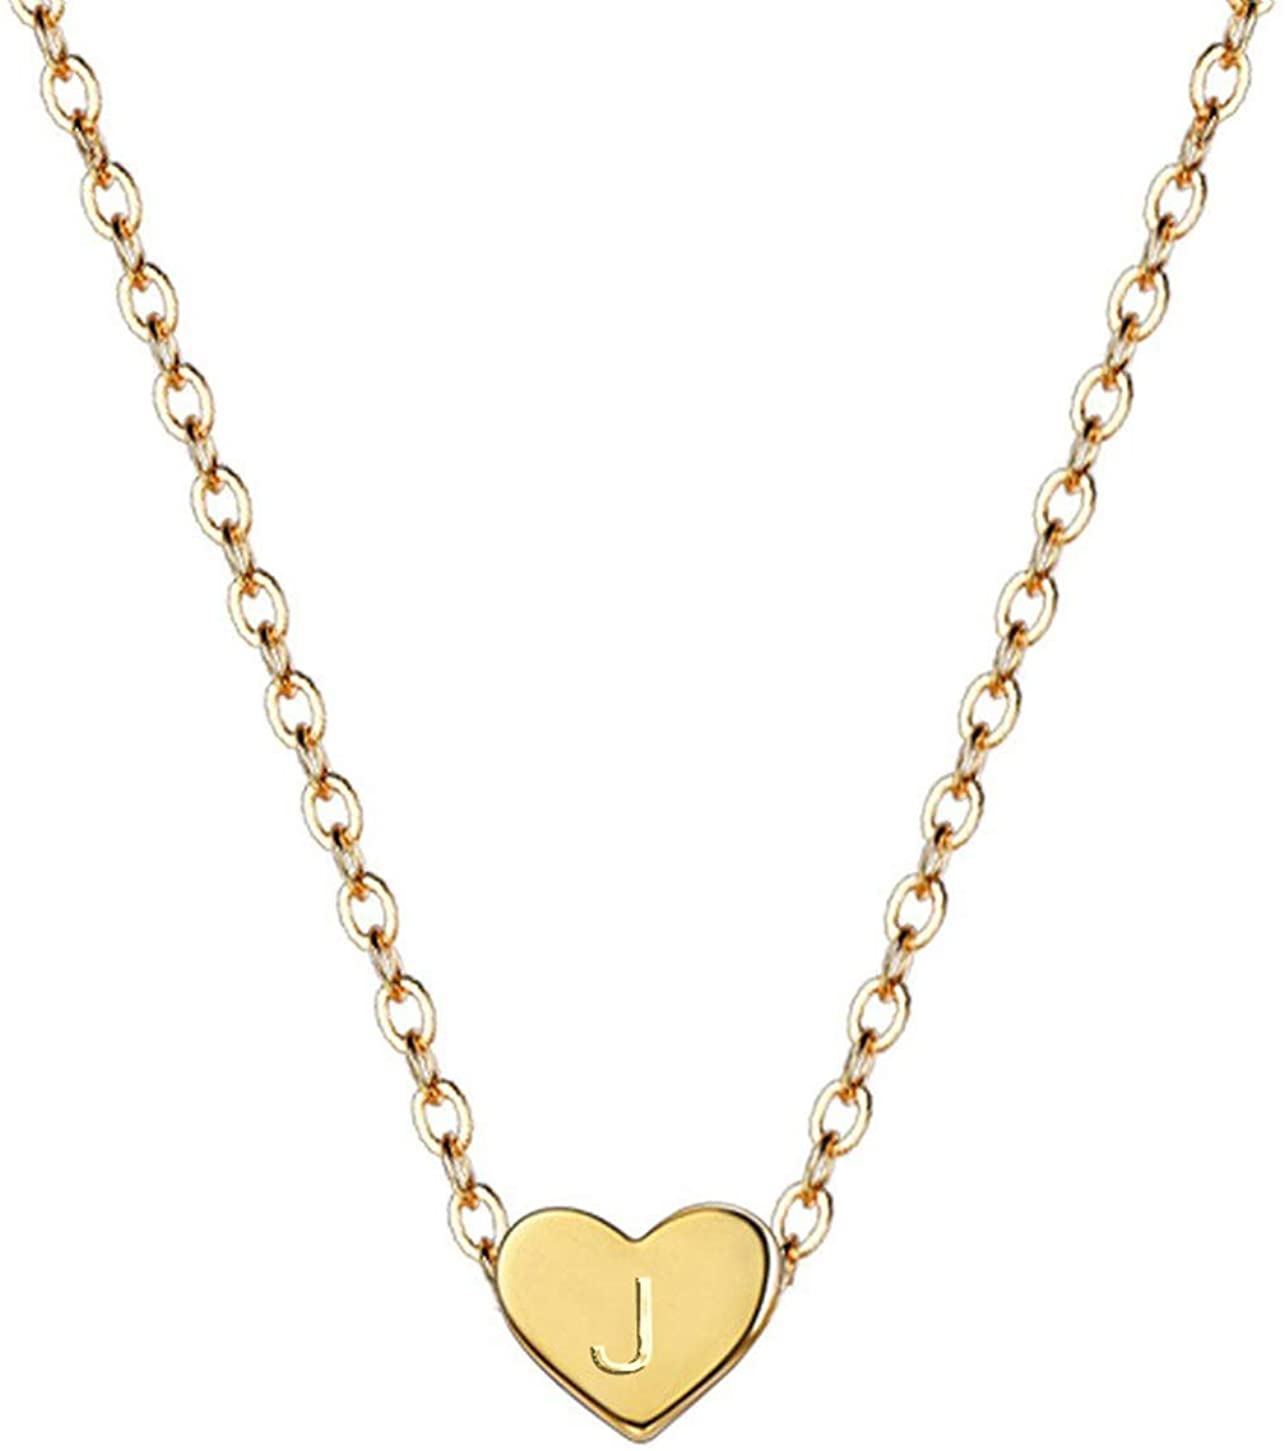 18K Gold Plated Initial Heart Necklace Stainless Steel Name Necklace Personalized Tiny Heart Pendant Letters Necklace for Women